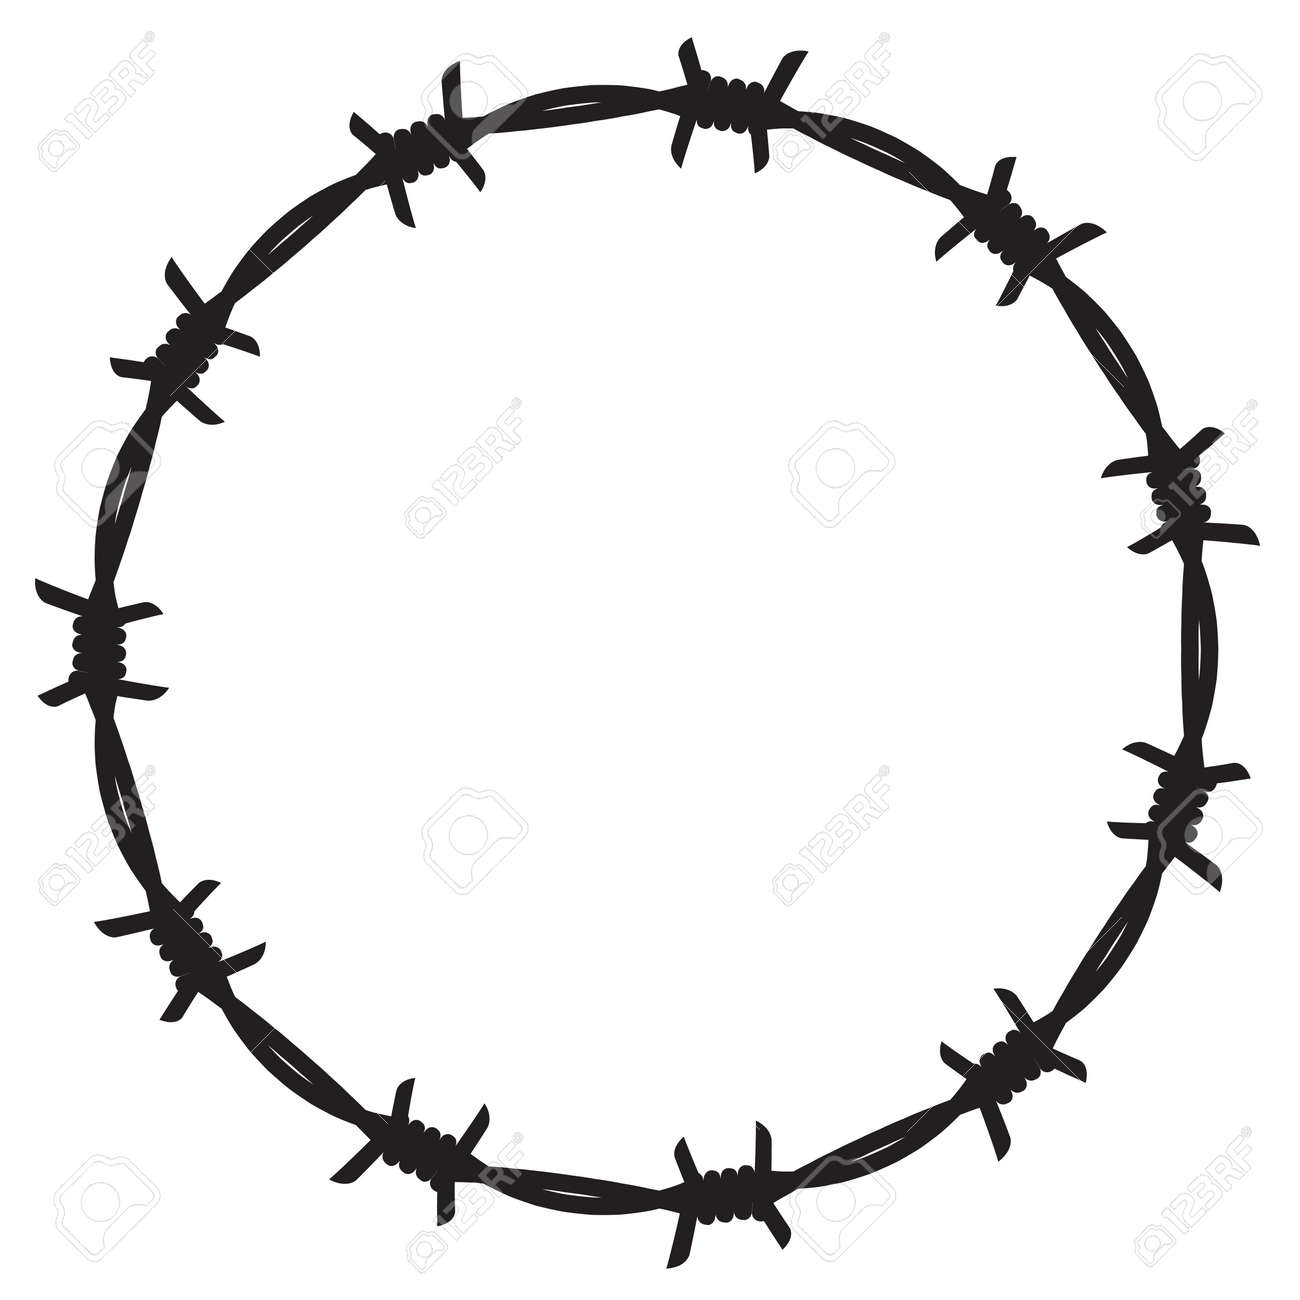 frame barbed wire royalty free cliparts vectors and stock rh 123rf com barb wire vector brush barb wire vector free download